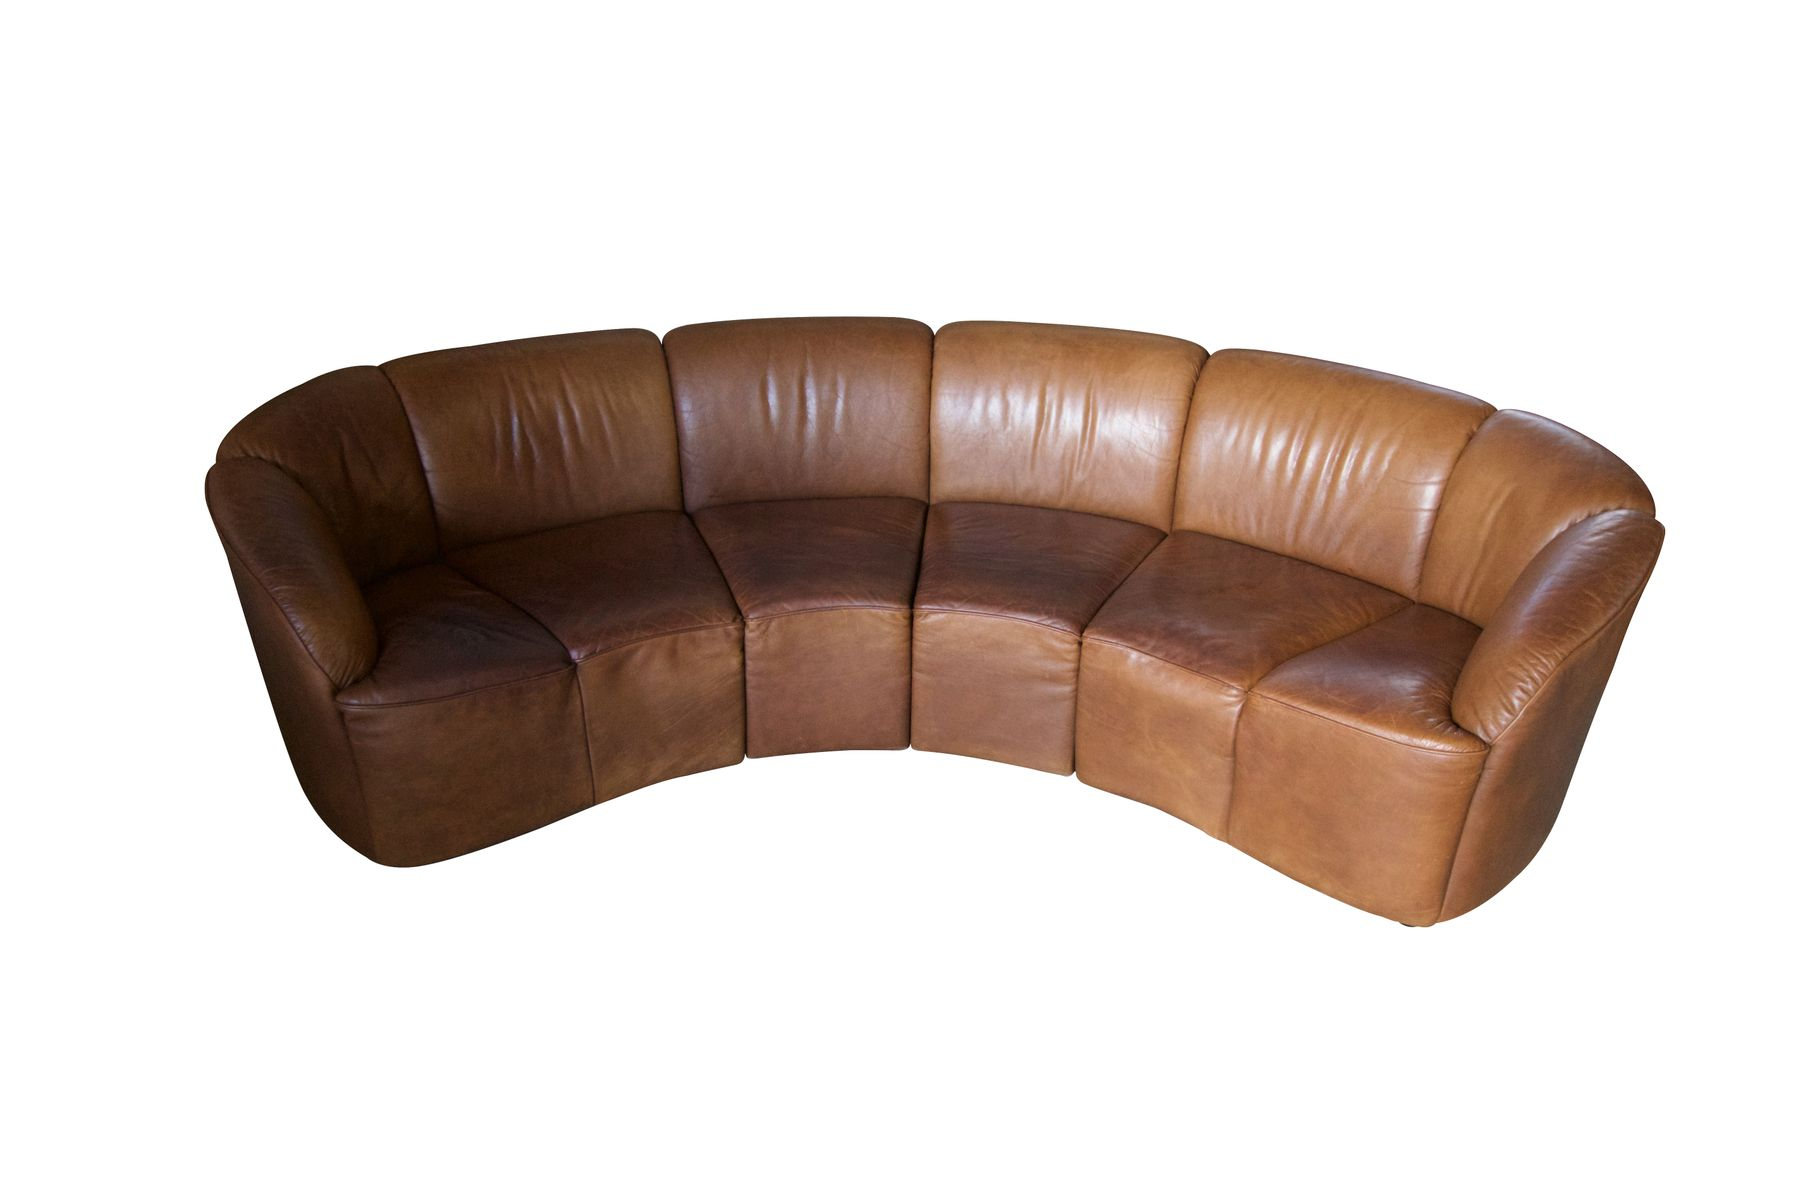 Modular Cognac Leather Sofa From Knoll International 1970s For Sale At Pamono